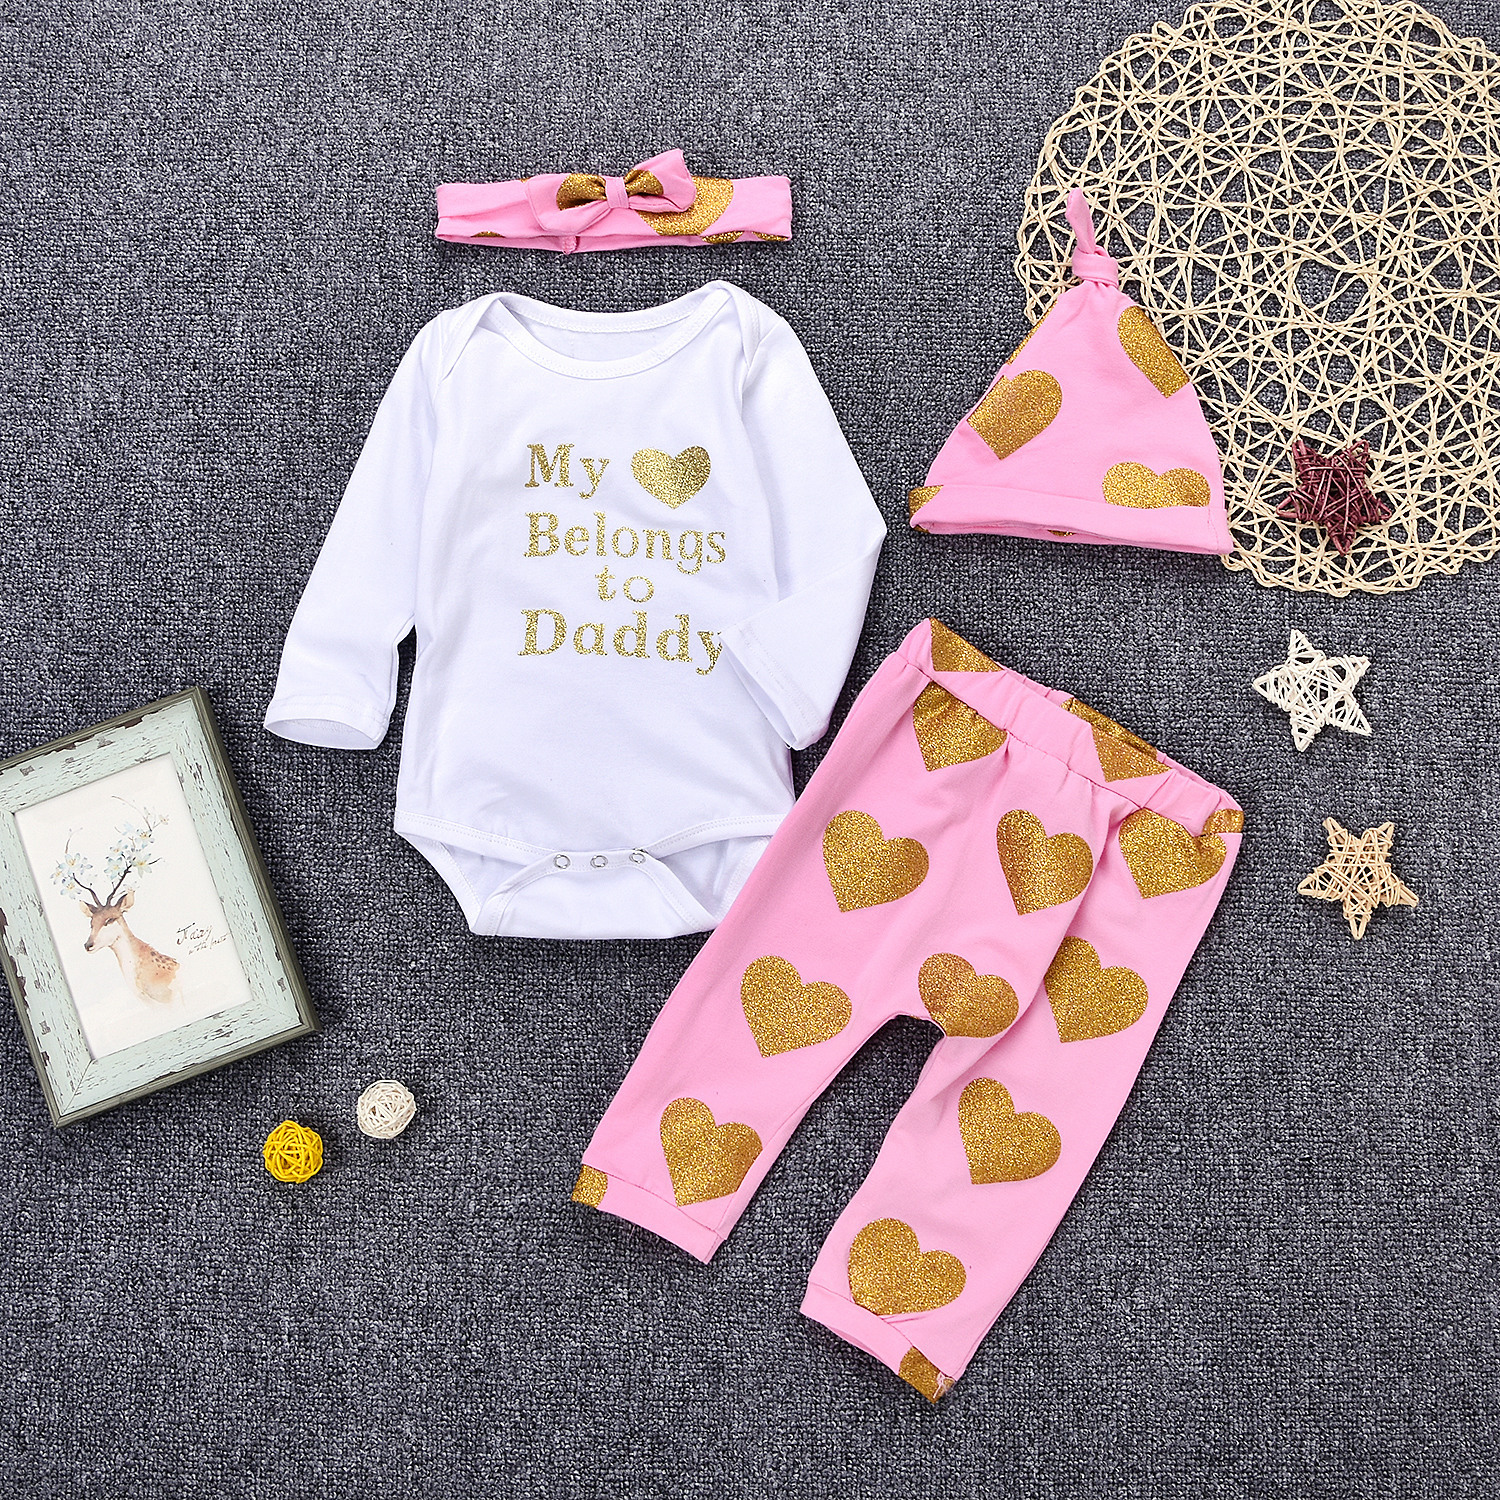 4PCS Pink Infant Set Newborn Baby Girls Outfits White Heart Sequined Long Sleeve Romper + Pants Autumn Kids Clothes